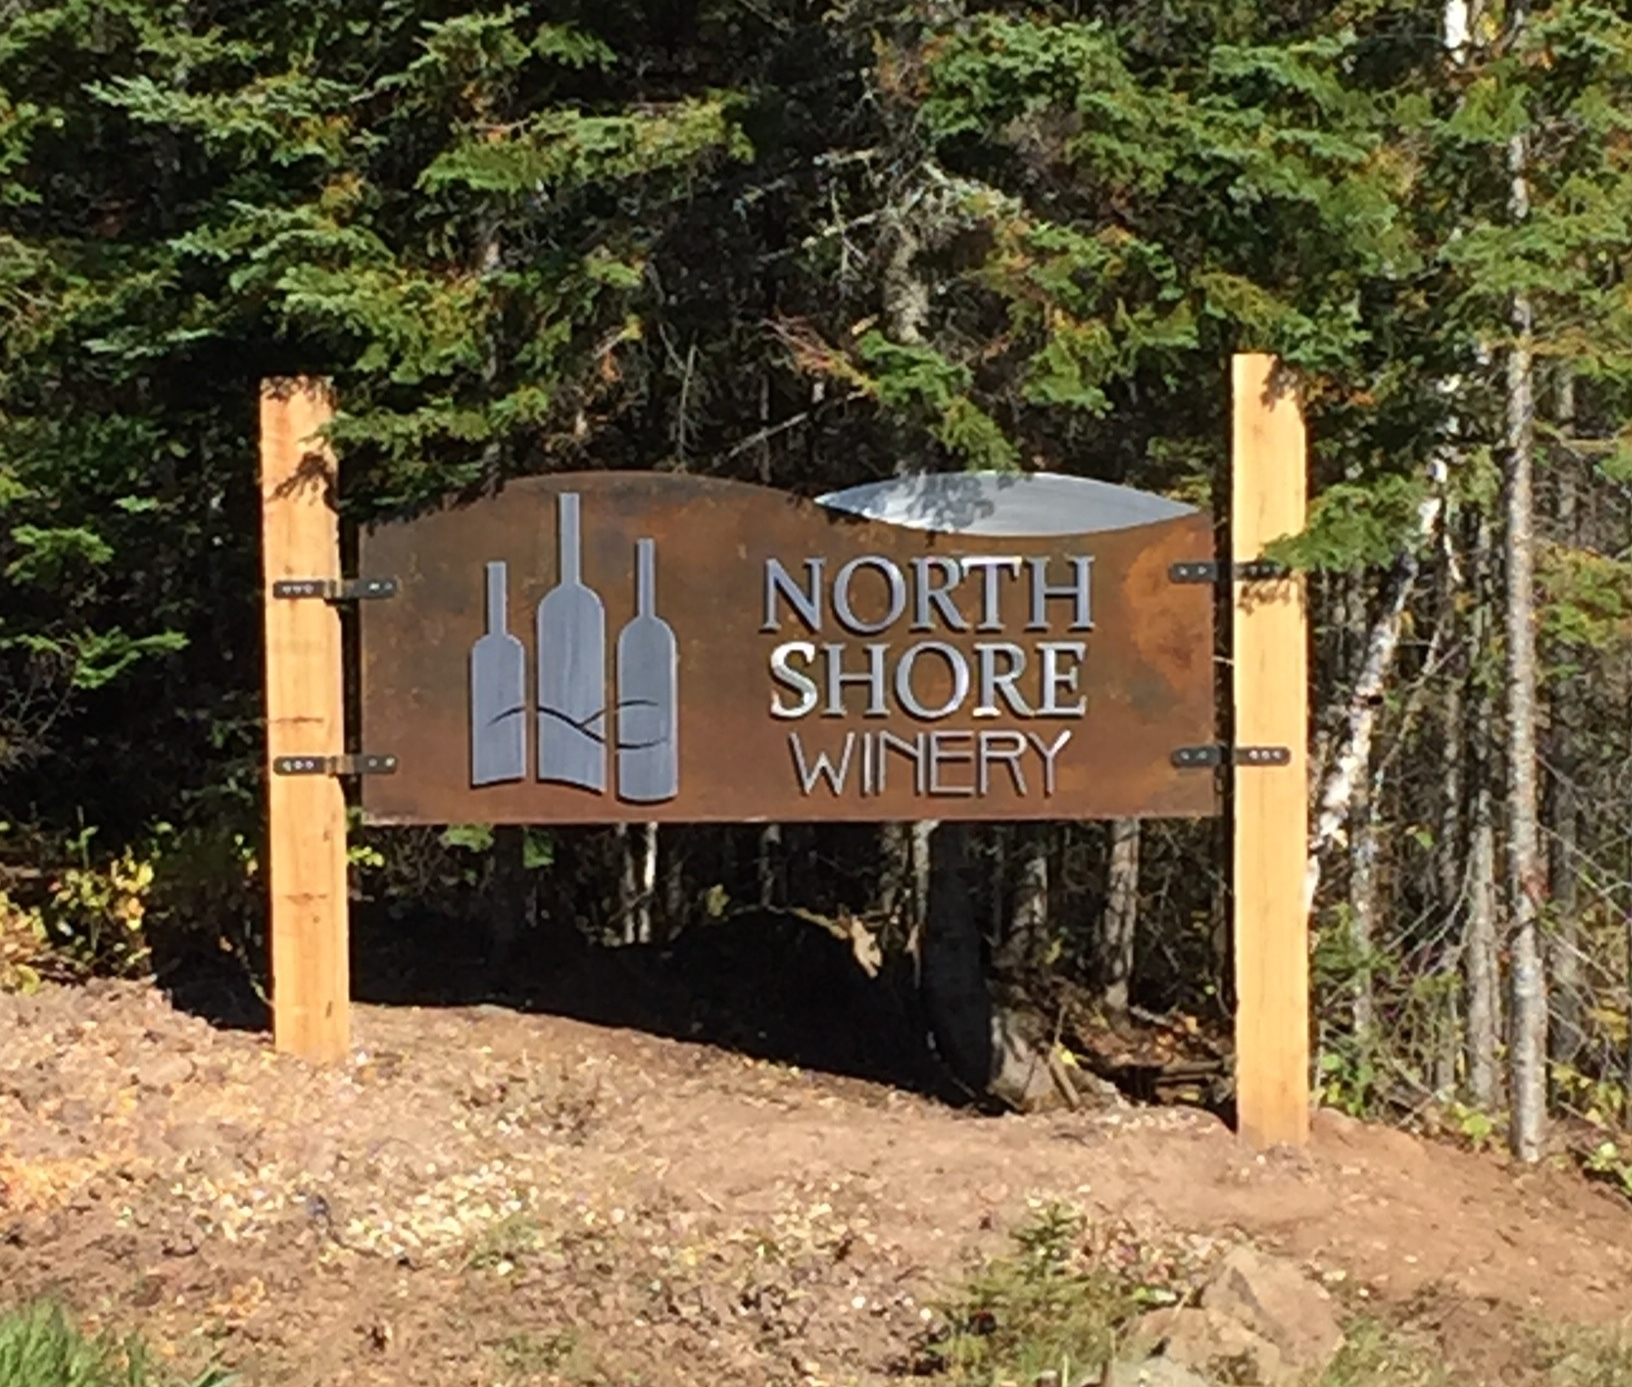 northshore-winery-in-place.jpg